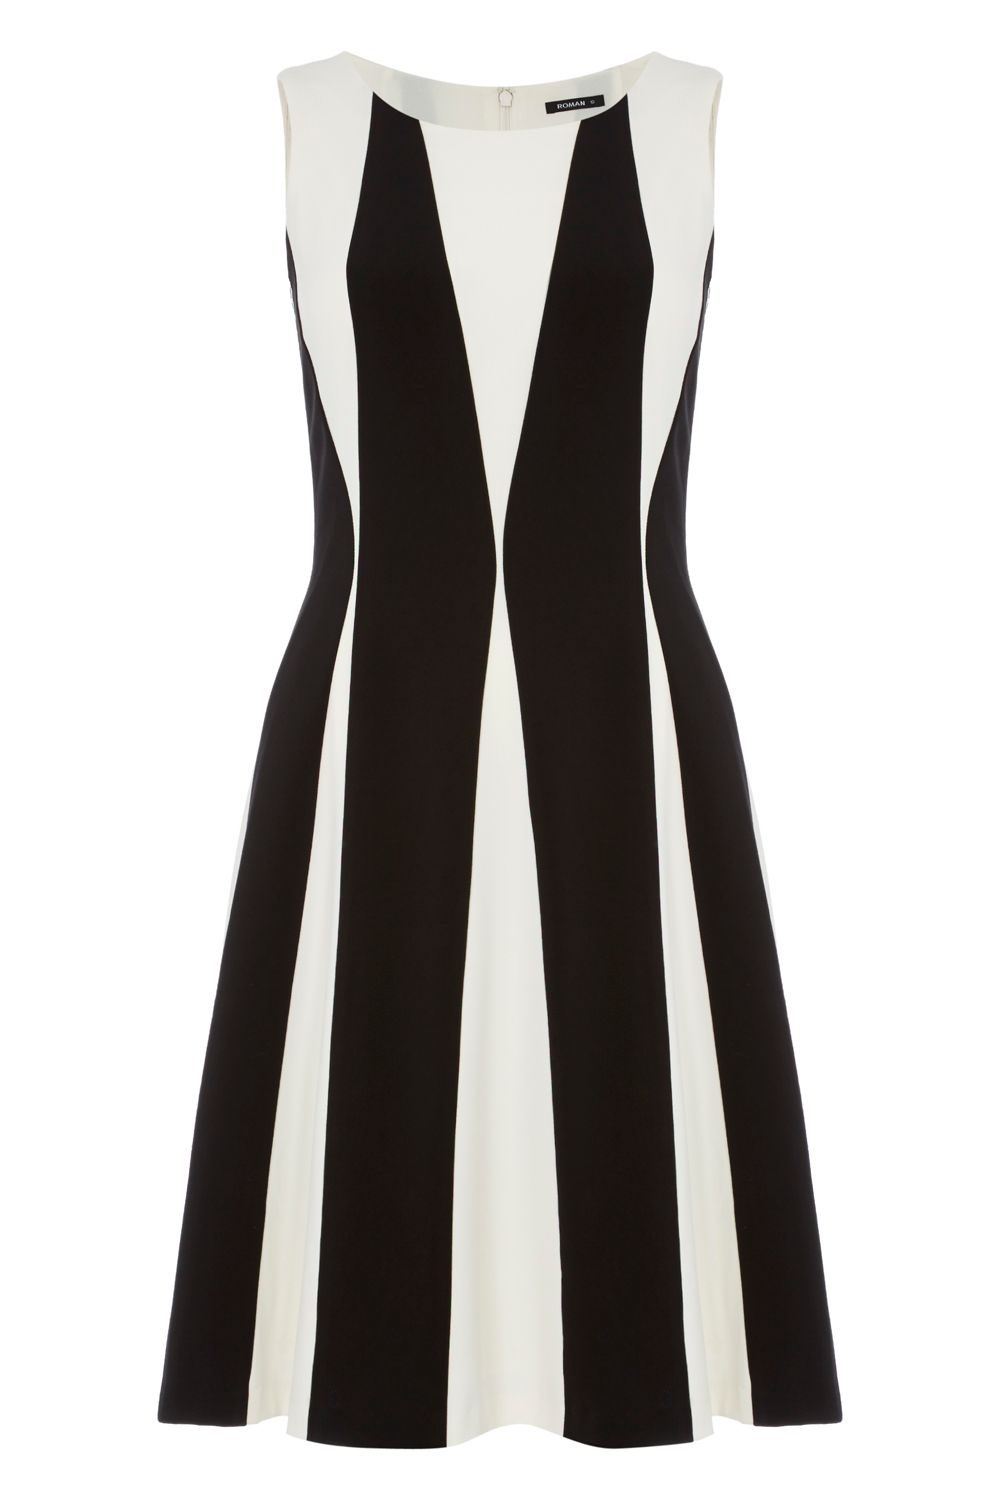 Roman Originals Contrast Panel Detail Dress, Black